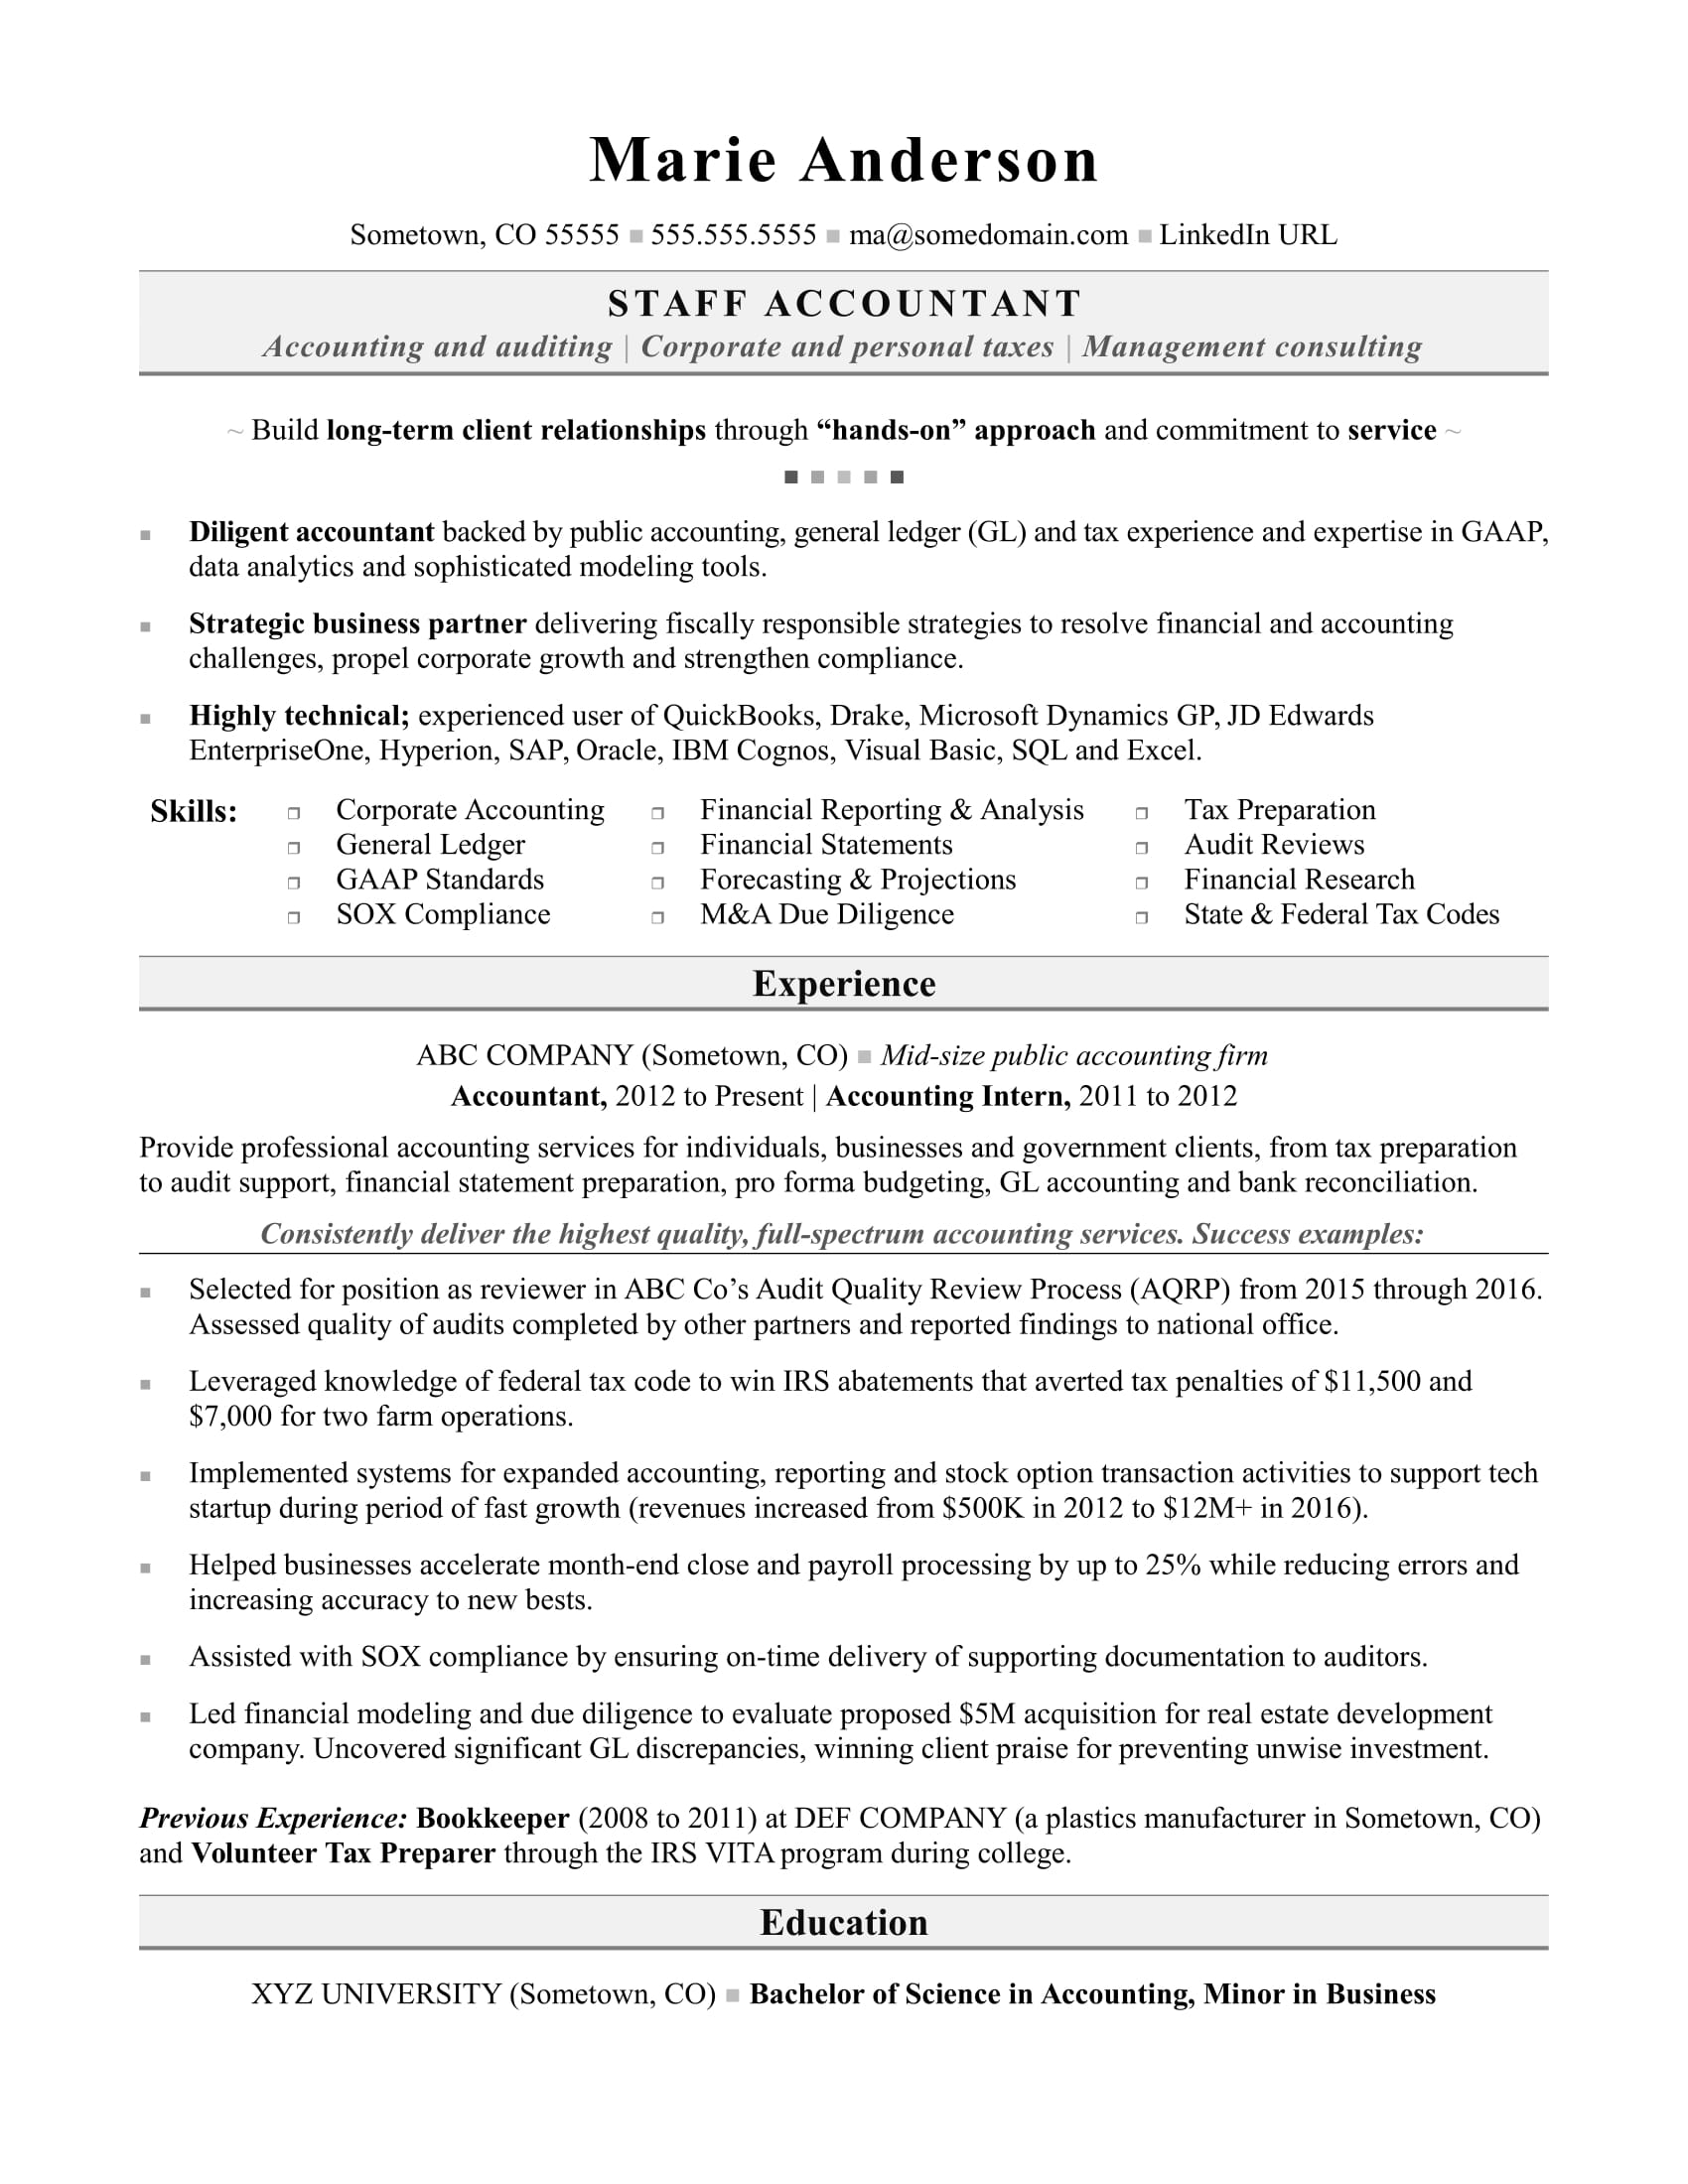 accounting resume sample monster areas of expertise for accountant injection moulding Resume Areas Of Expertise For Accountant Resume